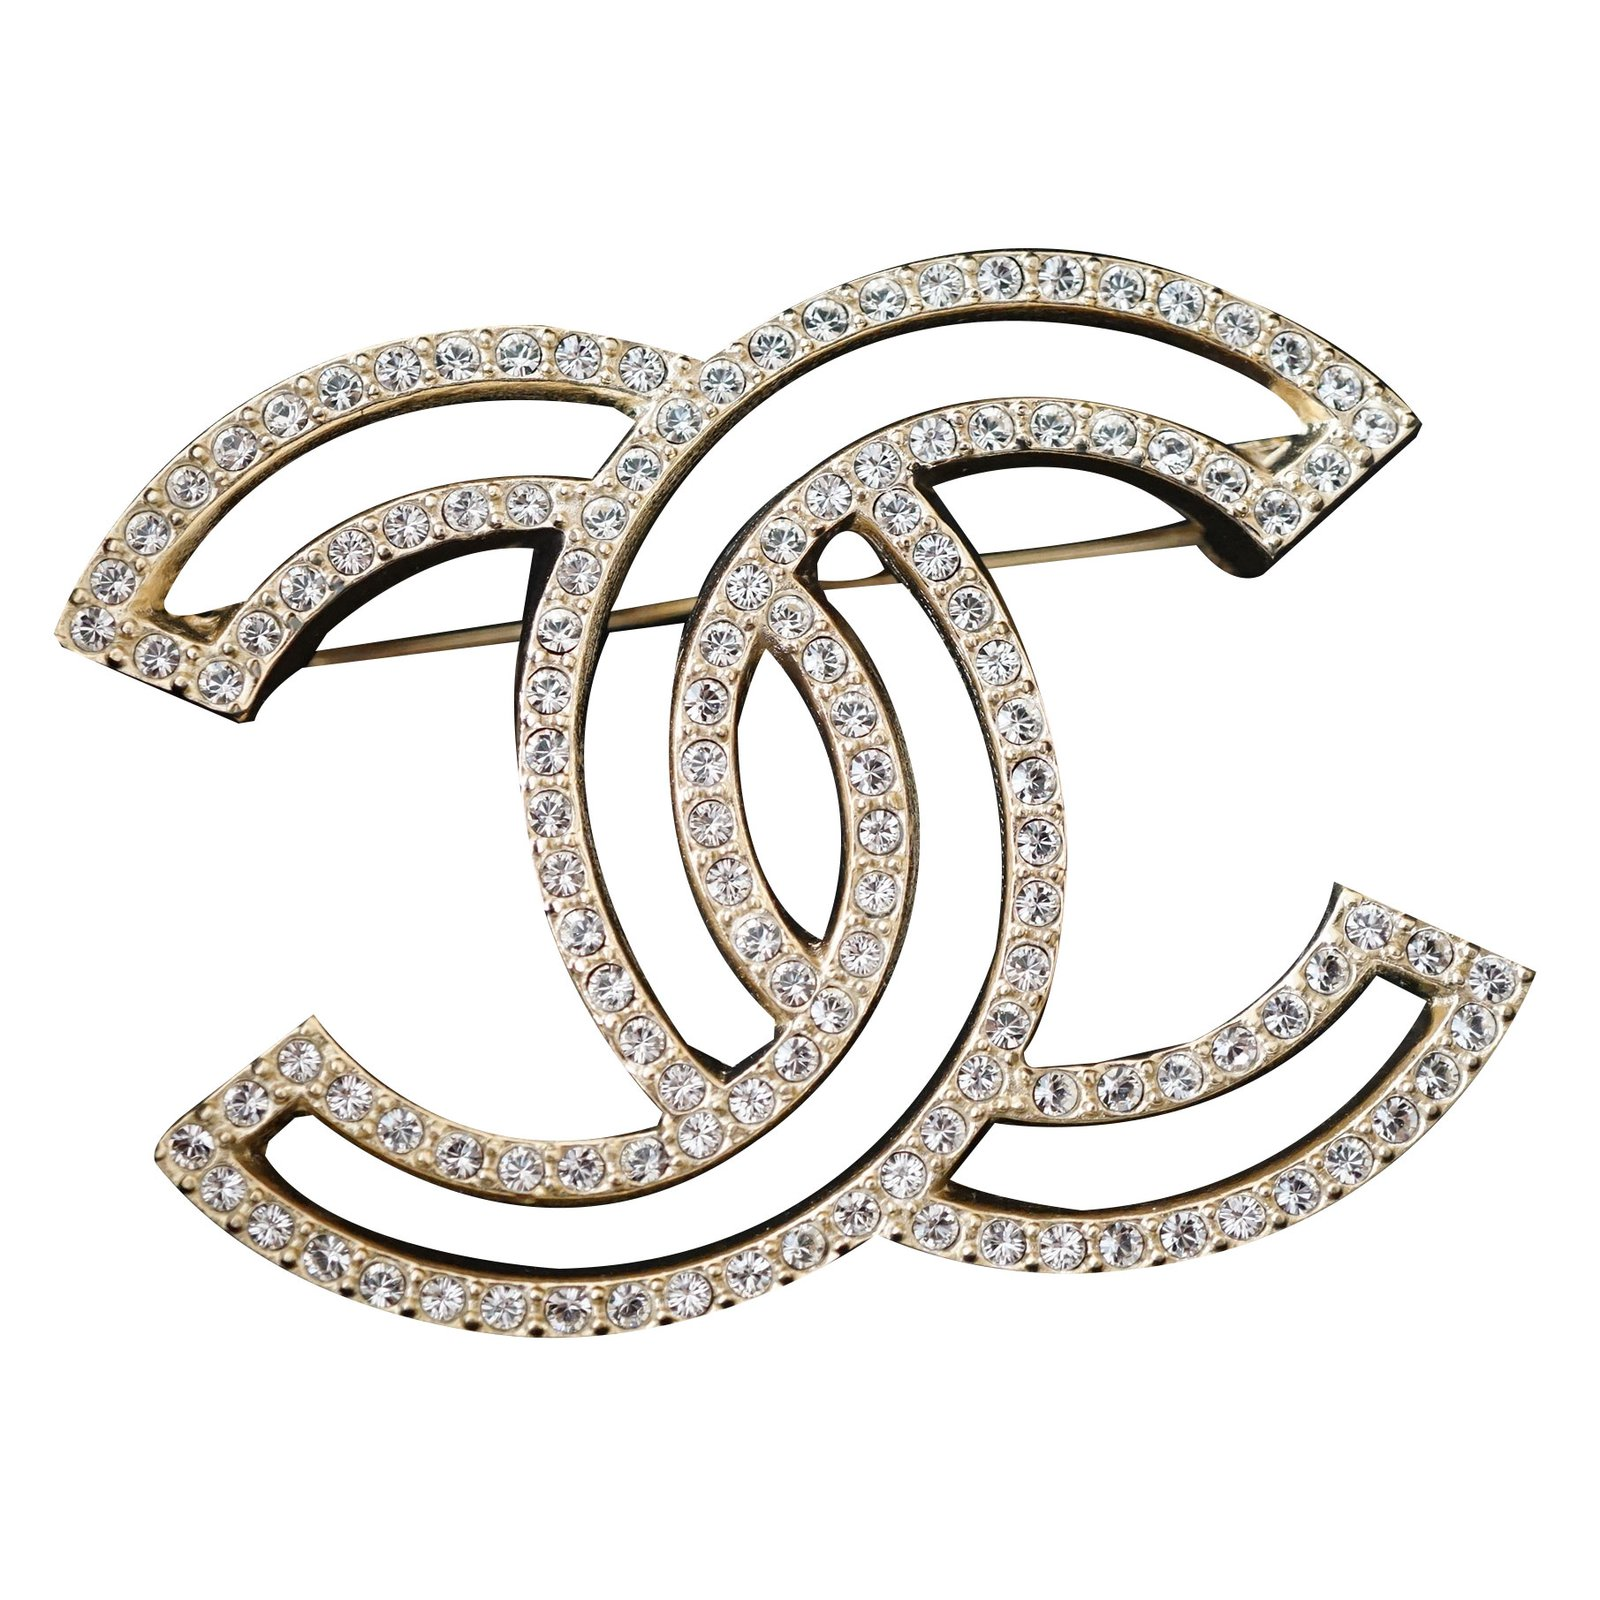 cc chanel img leather pearls brooch channel product and new